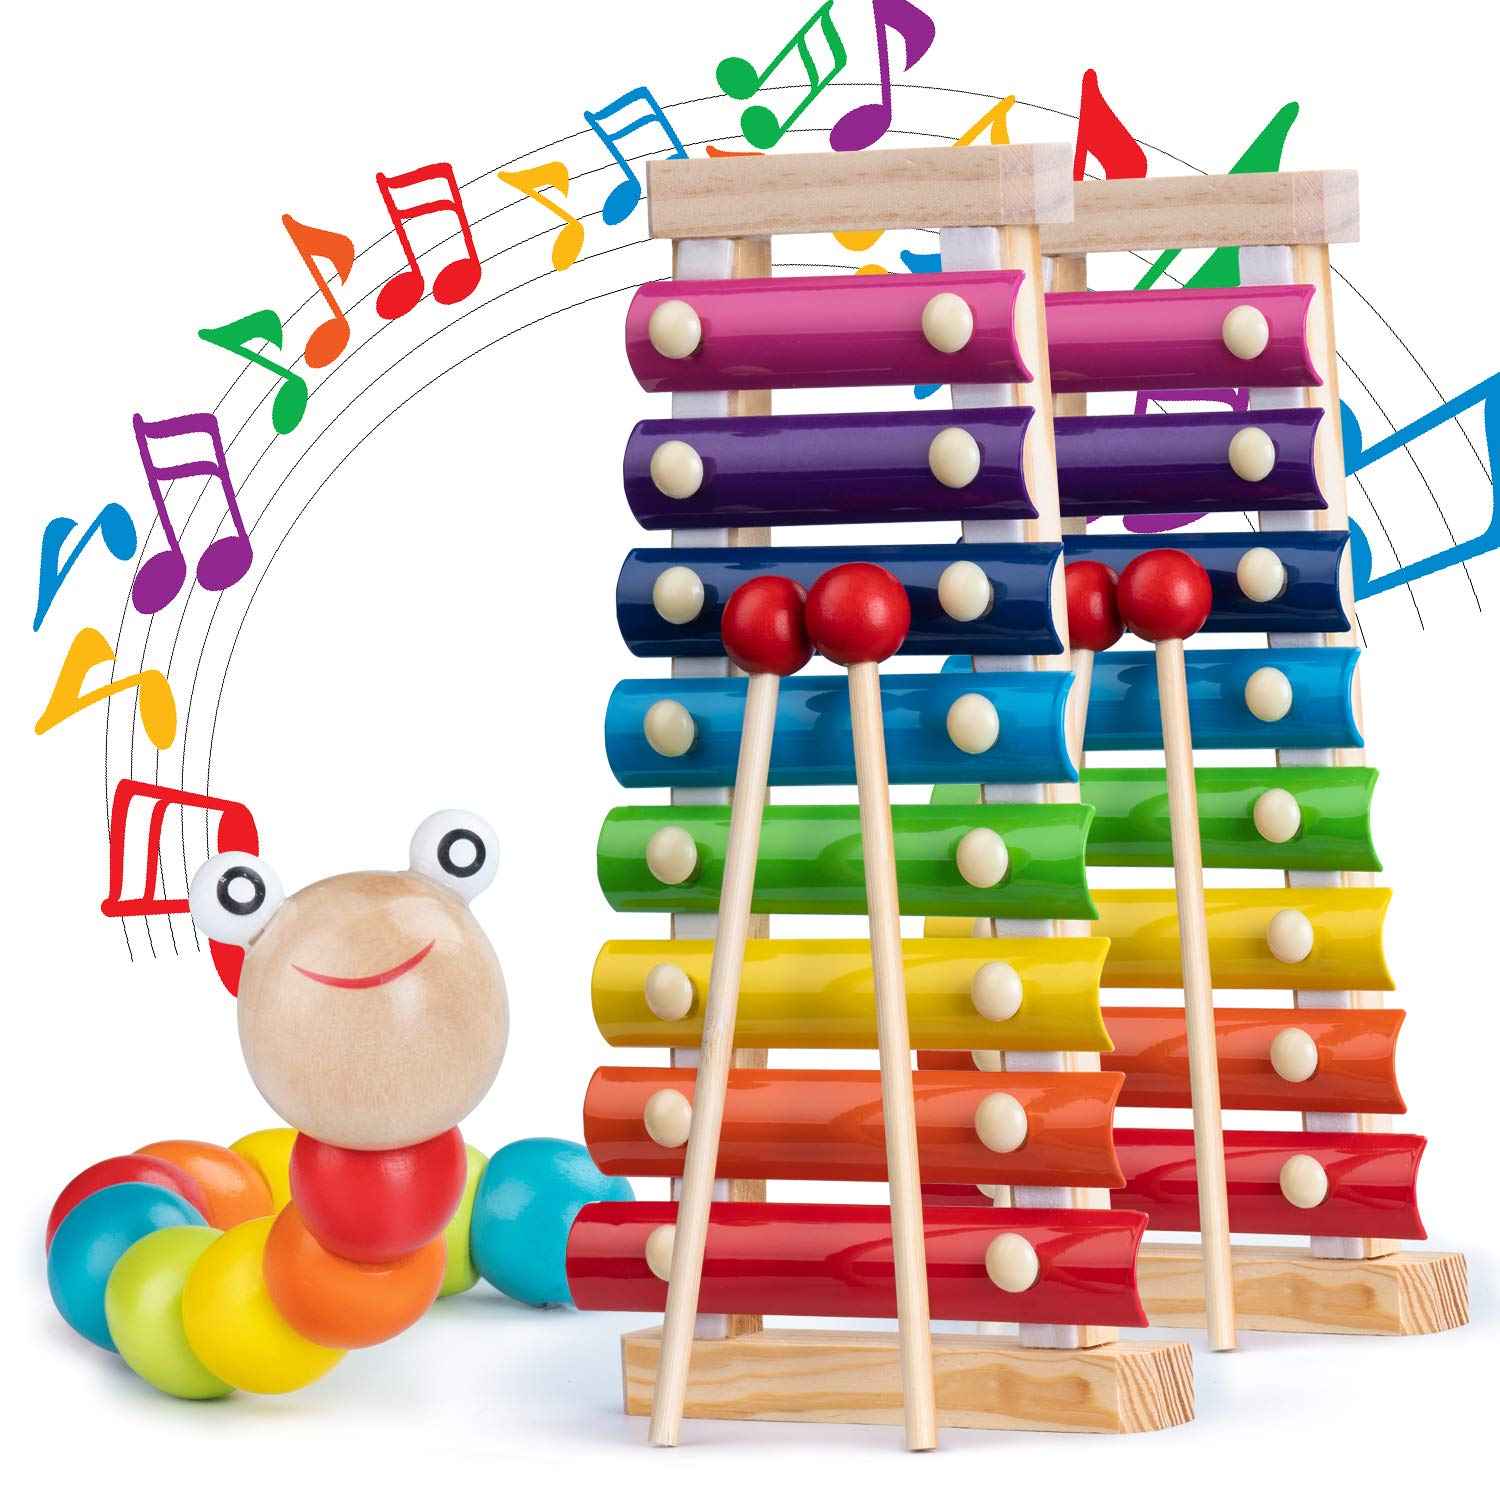 Xylophone for Kids Set Of Three Instrument Toys With Two Xylophone,One caterpillar toy-JiangChuan(2019 New Design),Best Birthday/Holiday Gift For Children's with Two Safe Mallets,Free Music socure by JiangChuan (Image #2)